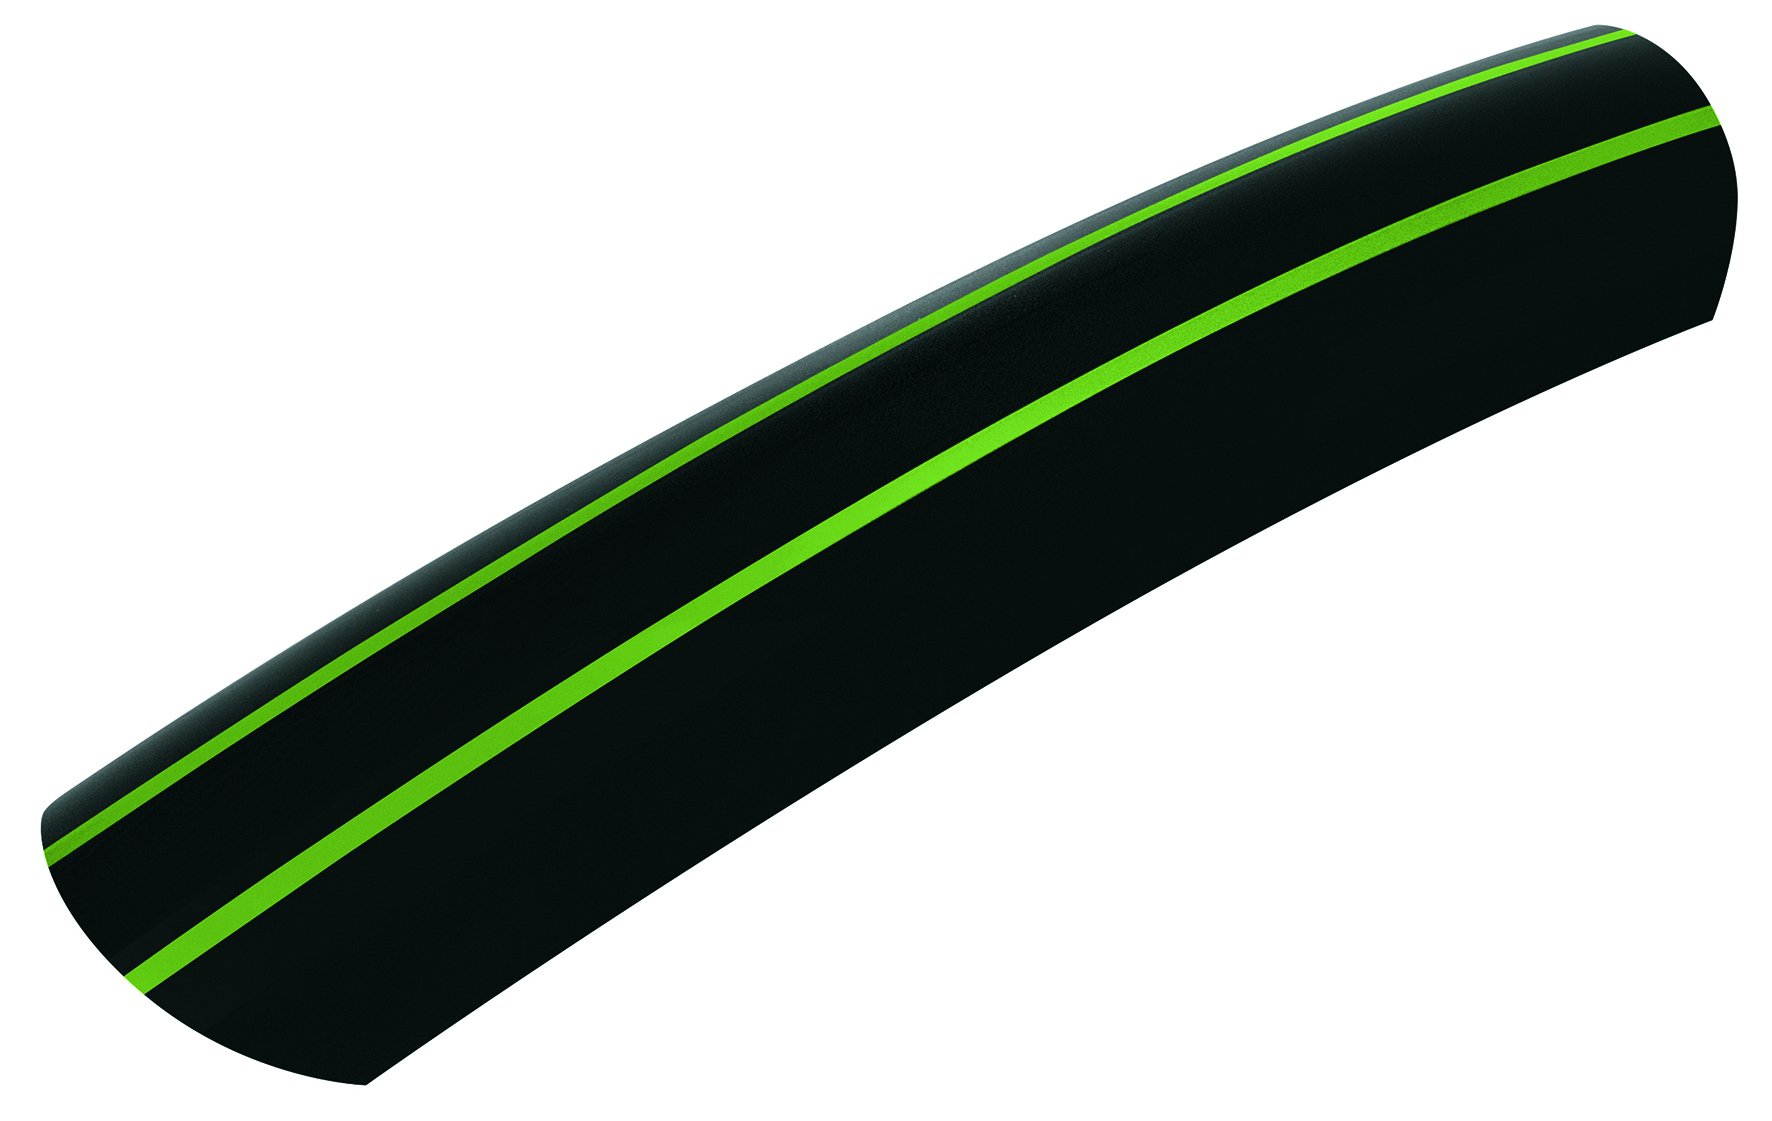 SKS-Germany Stingray Fender Set Green 45Mm With Green Striping, Black by SKS-Germany (Image #4)